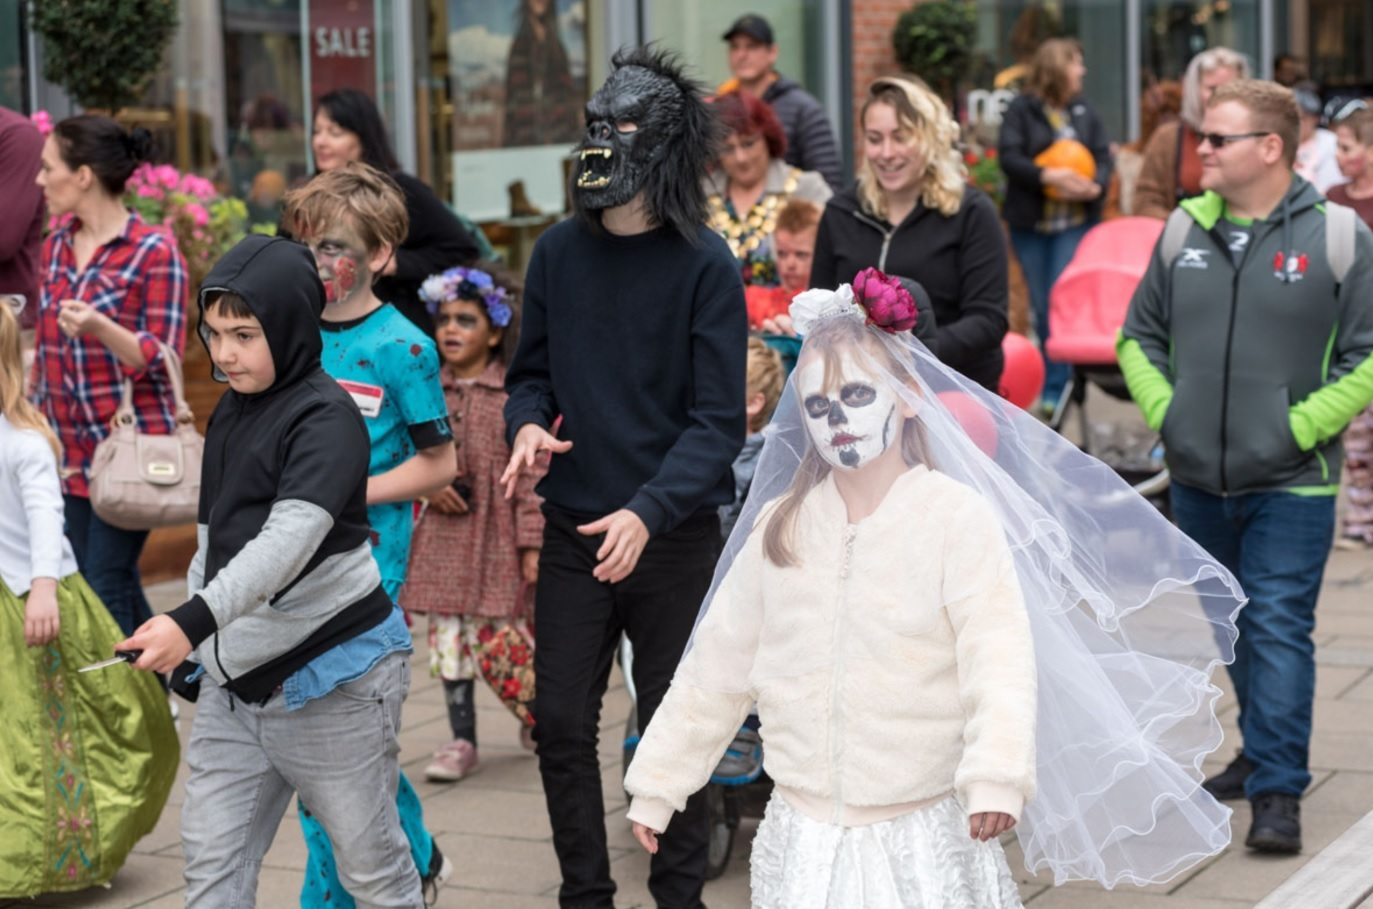 Plans are afoot for Halloween in Hereford City Centre